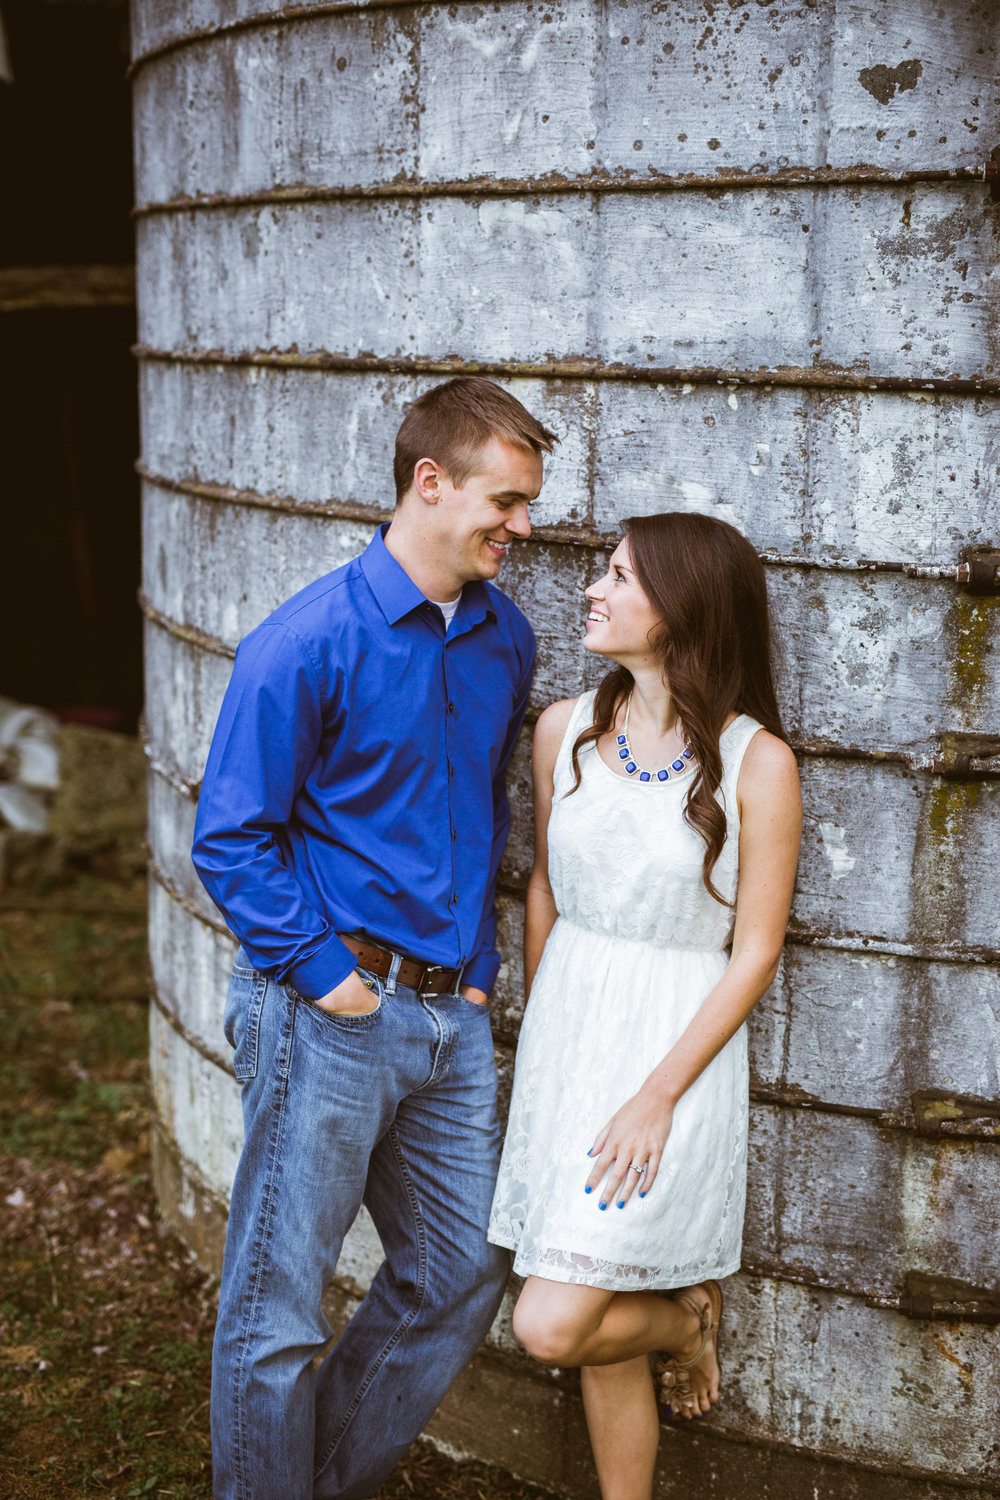 Todd-Hunt Engagement-94.jpg